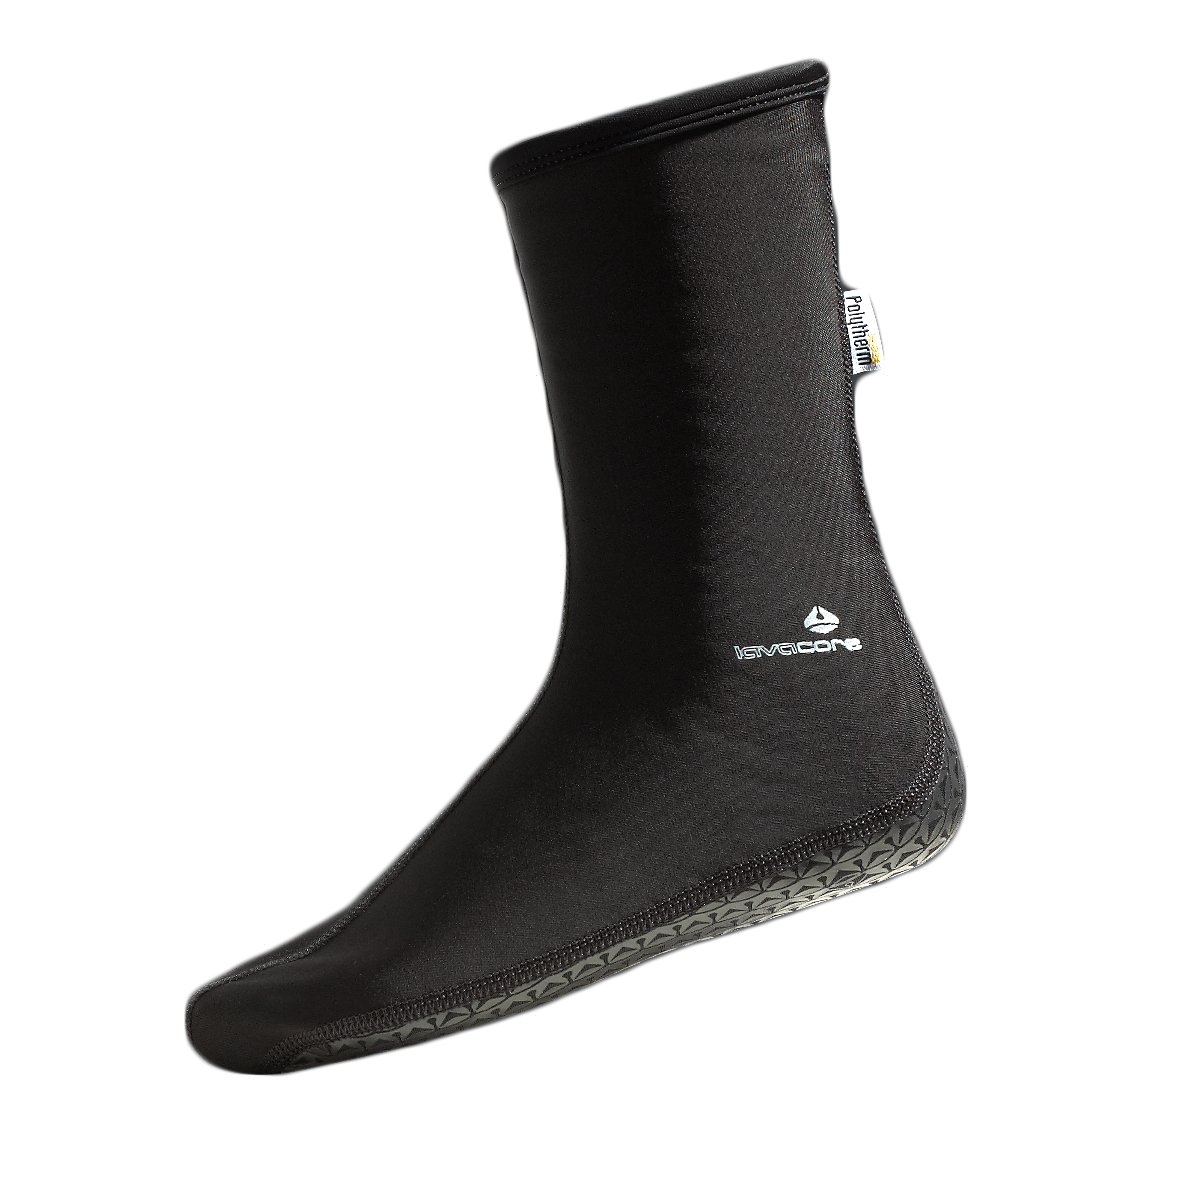 X-Small Lavacore Unisex Socks Great for Scuba Divers,Snorklers and Watersports Activities